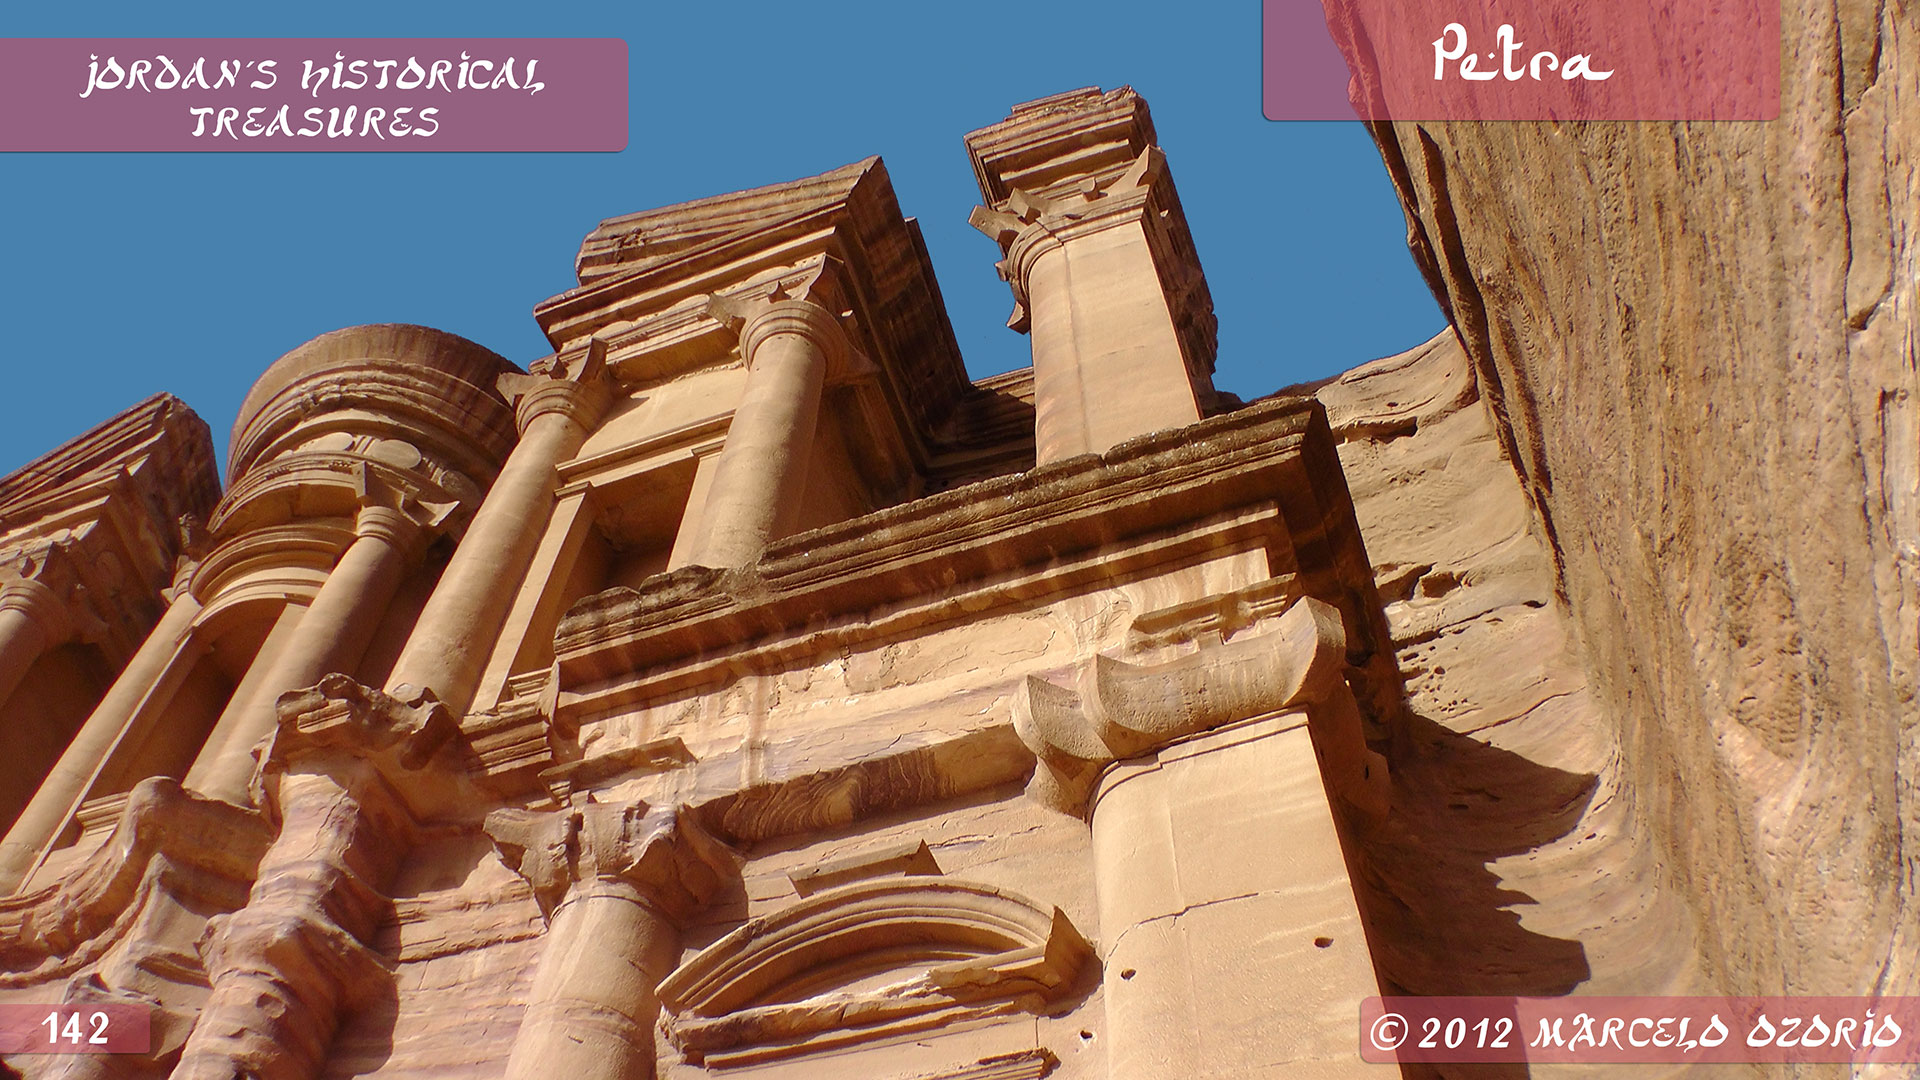 Petra Archaeological City Jordan 62 - The Astonishing Treasure at Petra - Jordan